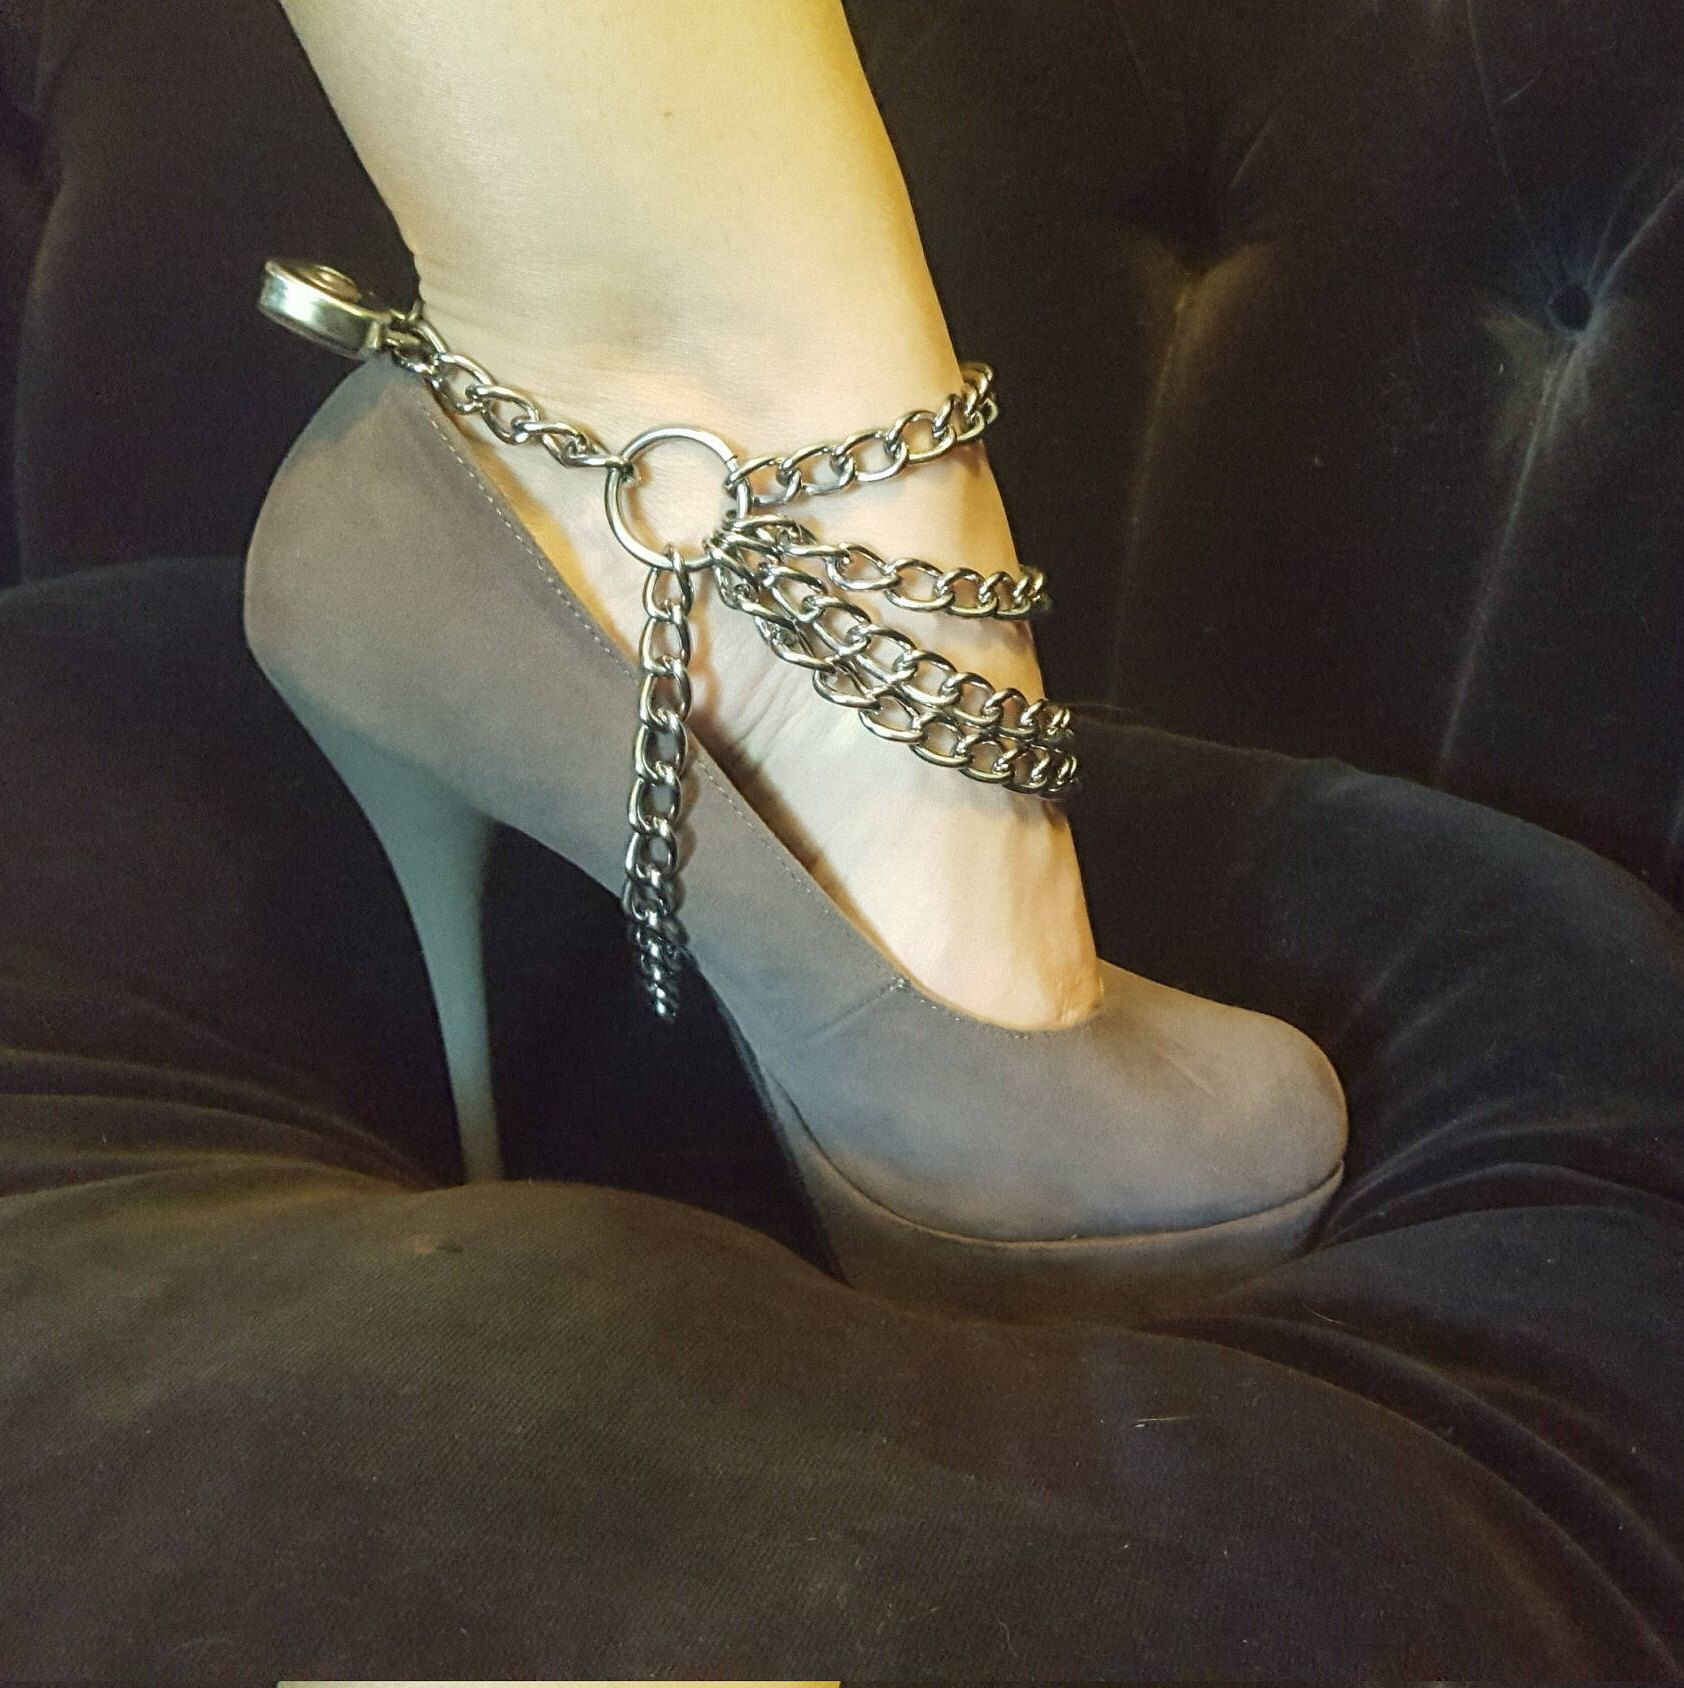 girl-naked-bdsm-shoe-lock-chains-anal-abuse-porn